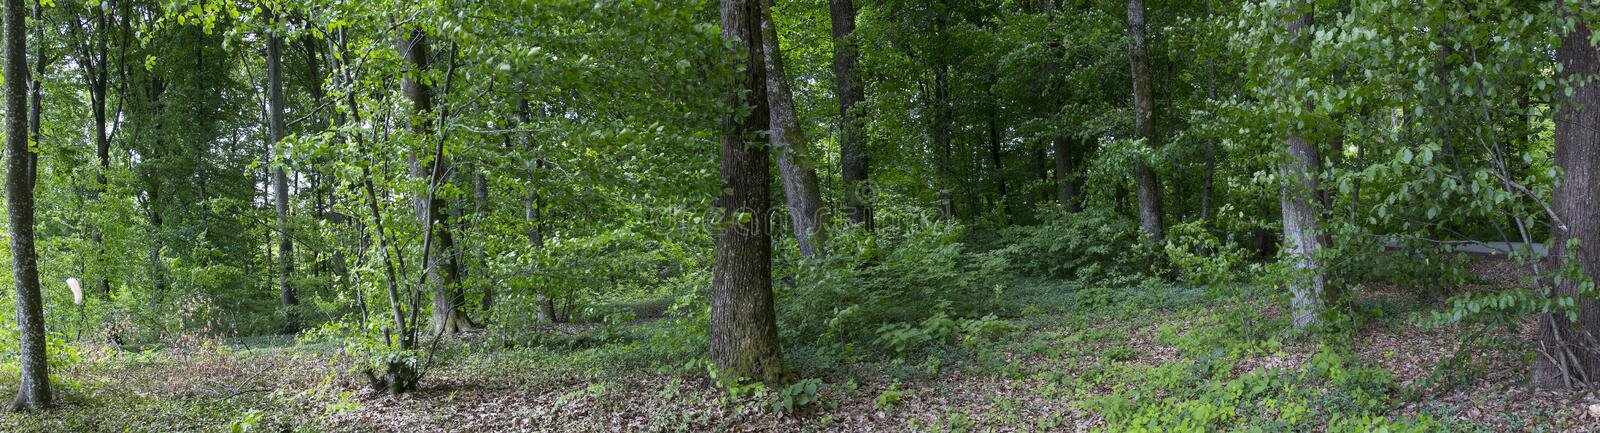 Forrest panorama royalty free stock photography